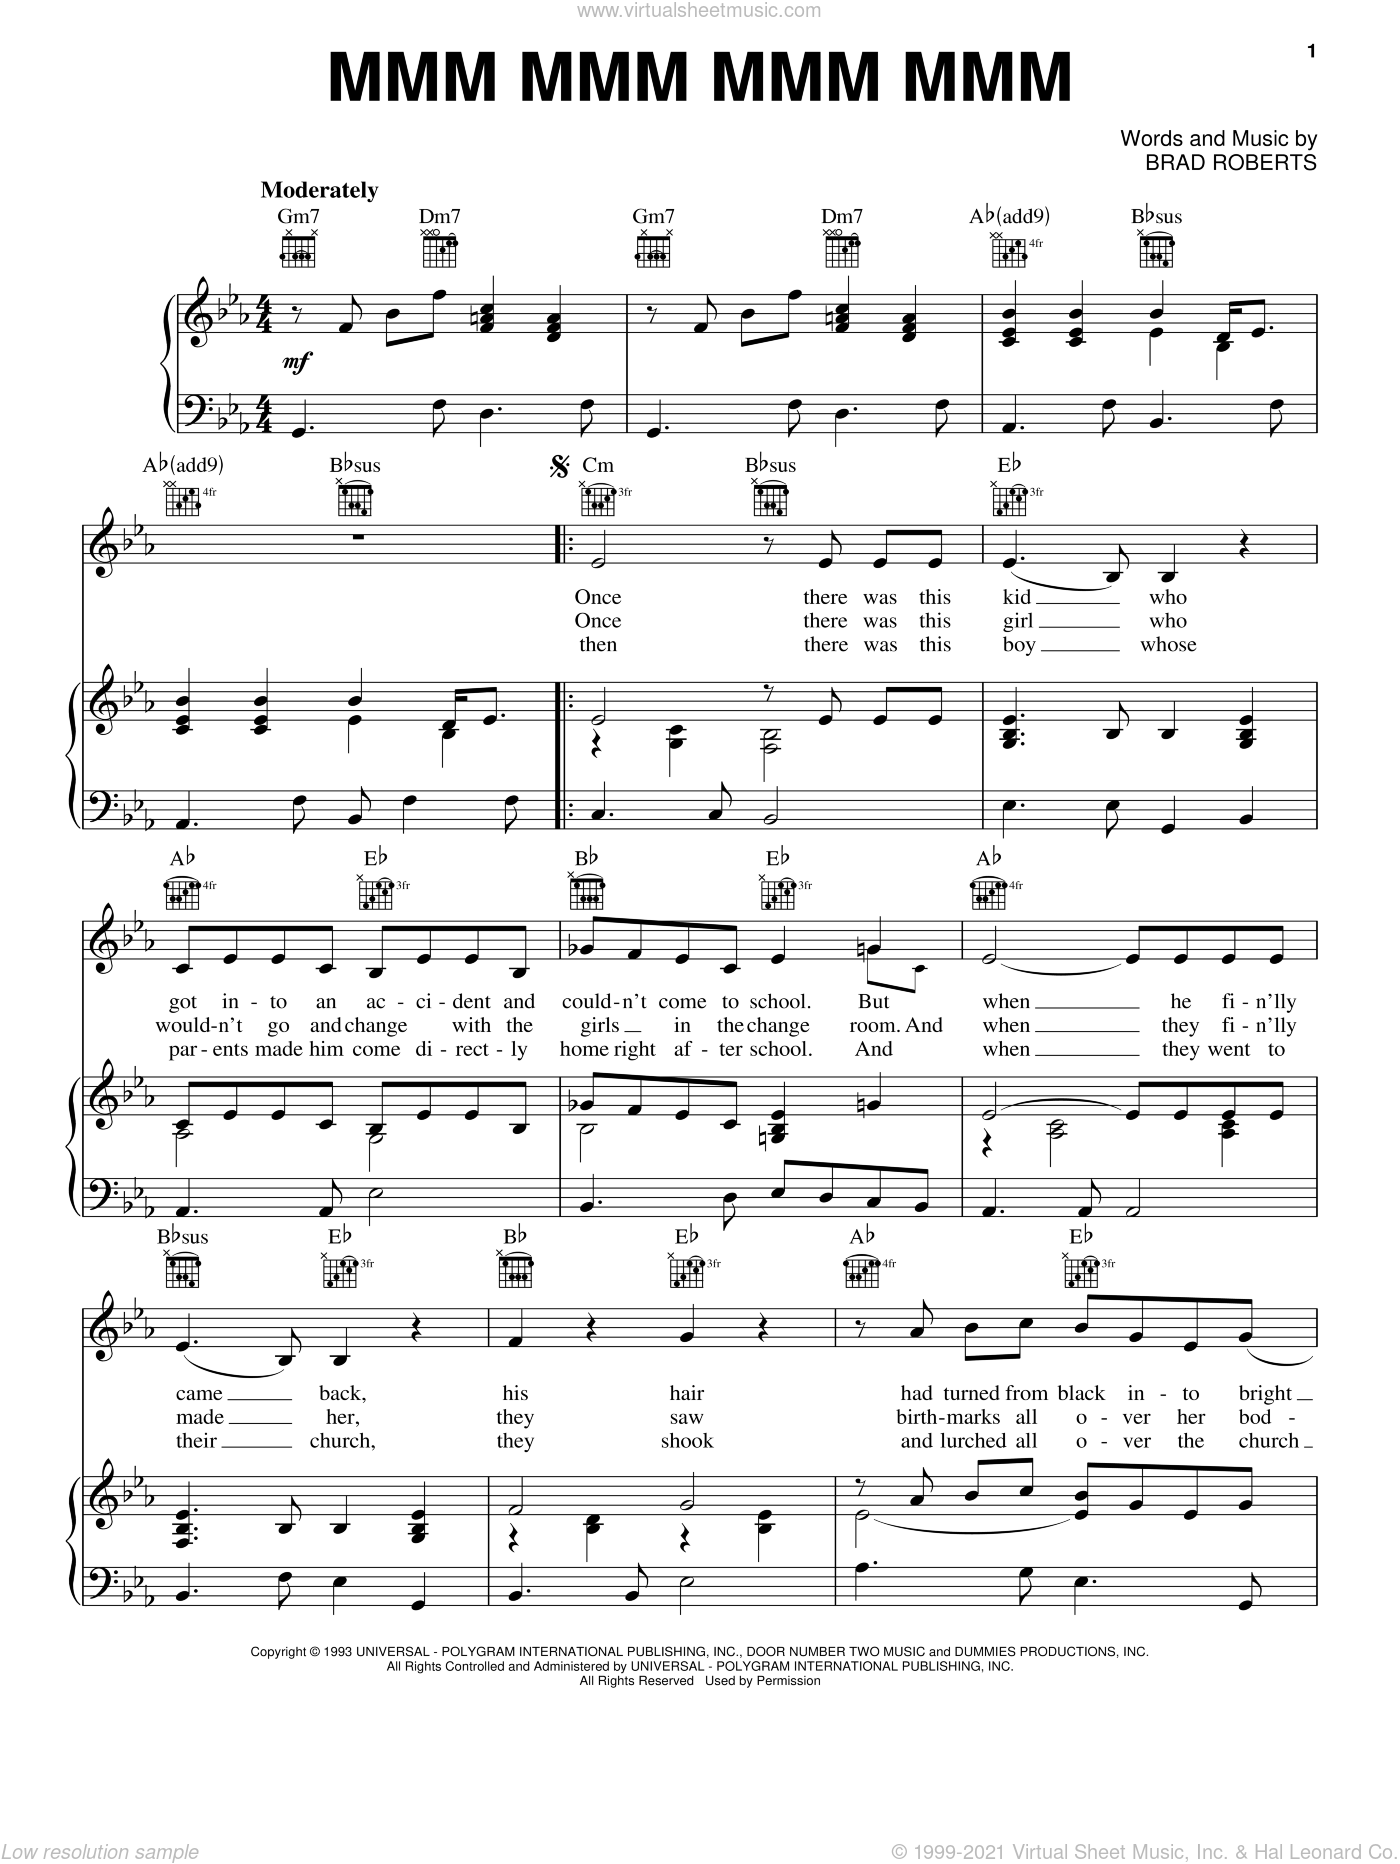 Mmm Mmm Mmm Mmm sheet music for voice, piano or guitar by Brad Roberts